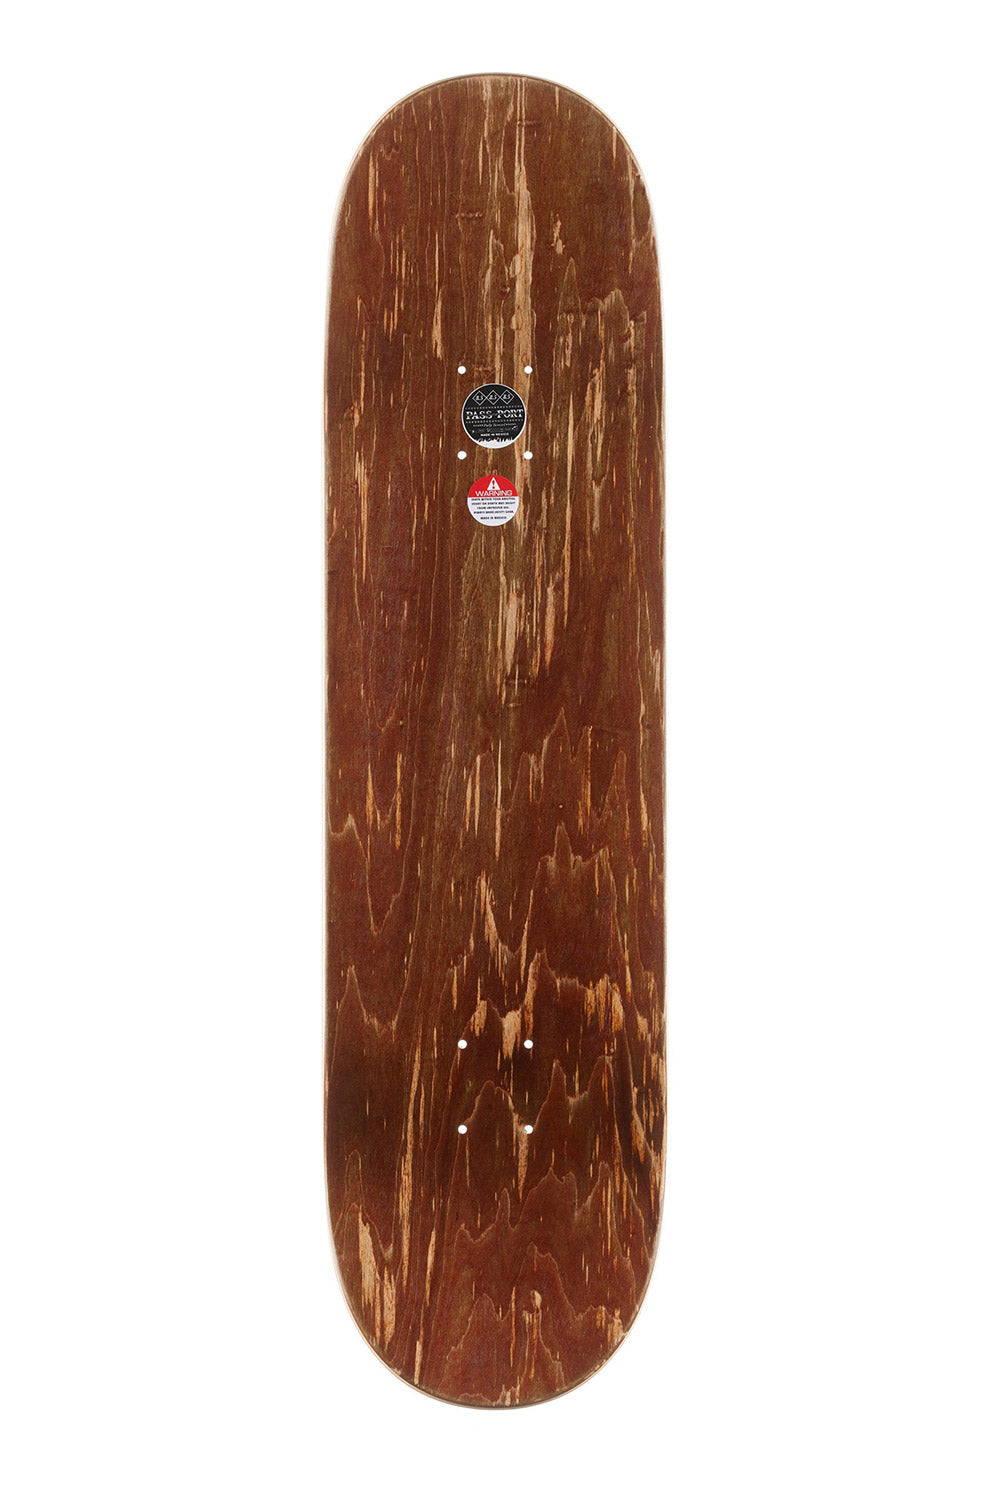 "Passport ""Legs"" What You Thought Series Skateboard Deck"